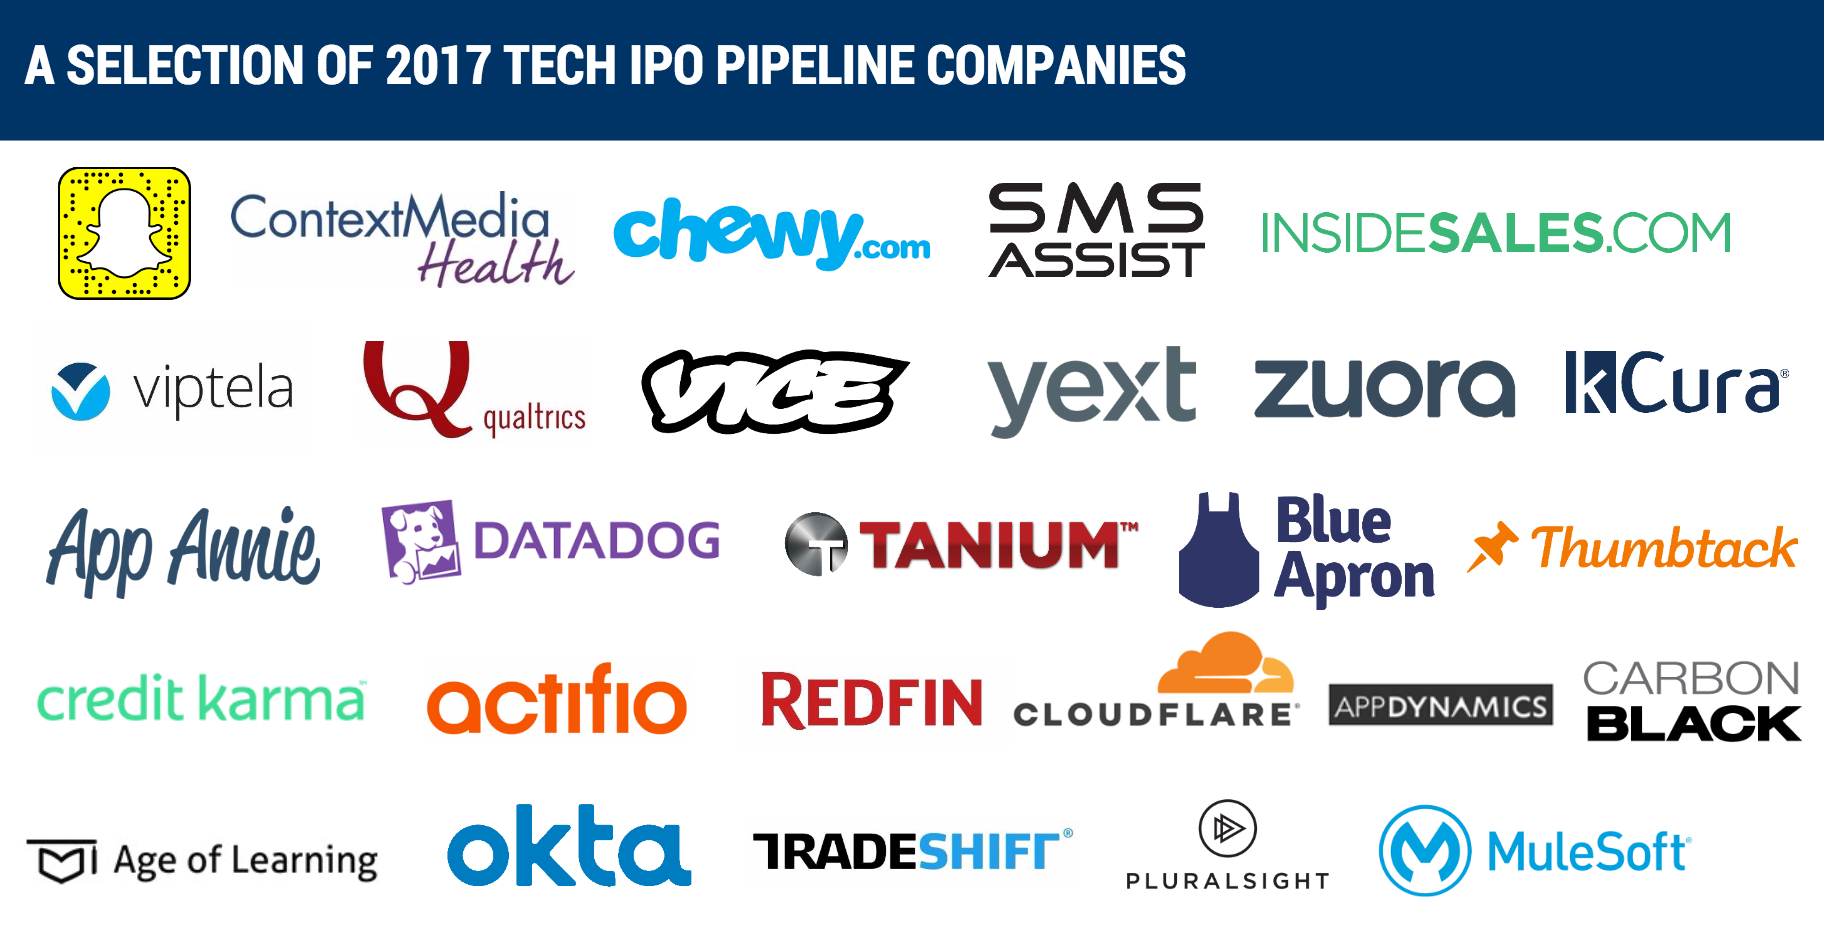 Here are the top 5 companies most likely to have an IPO in